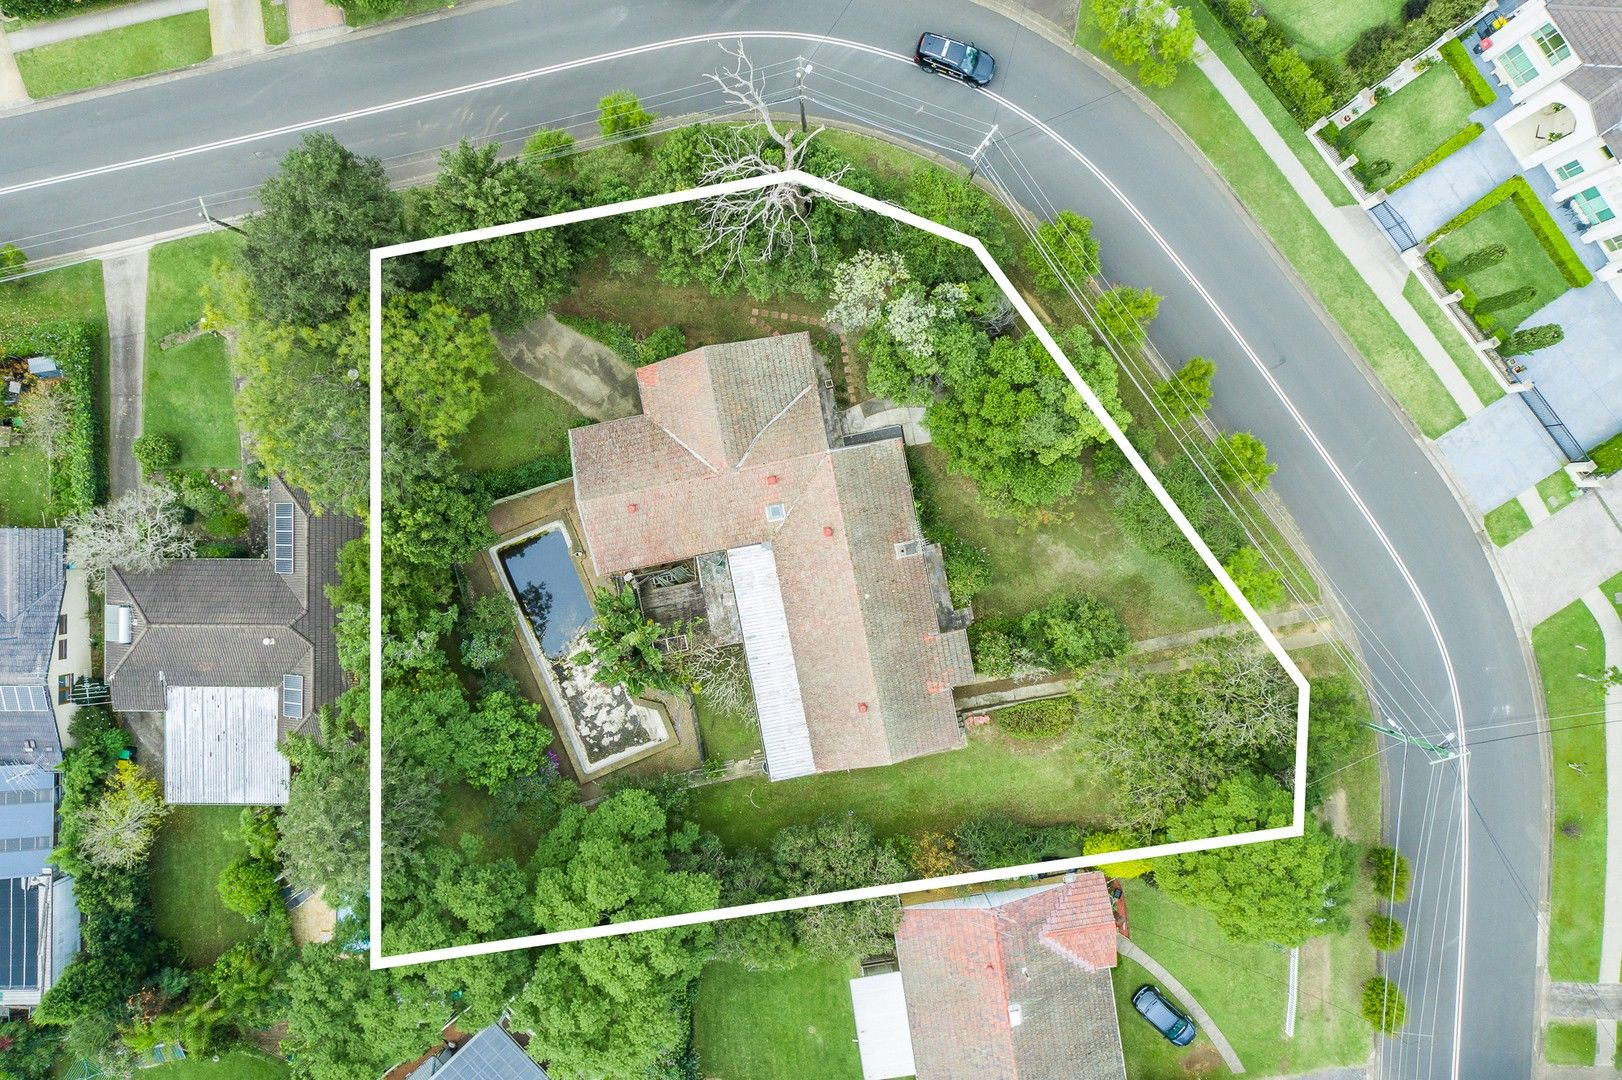 4 Rooms, House, For Sale, Excelsior Avenue, 3 Bathrooms, Listing ID 1480, Castle Hill, NSW, Australia, 2154,